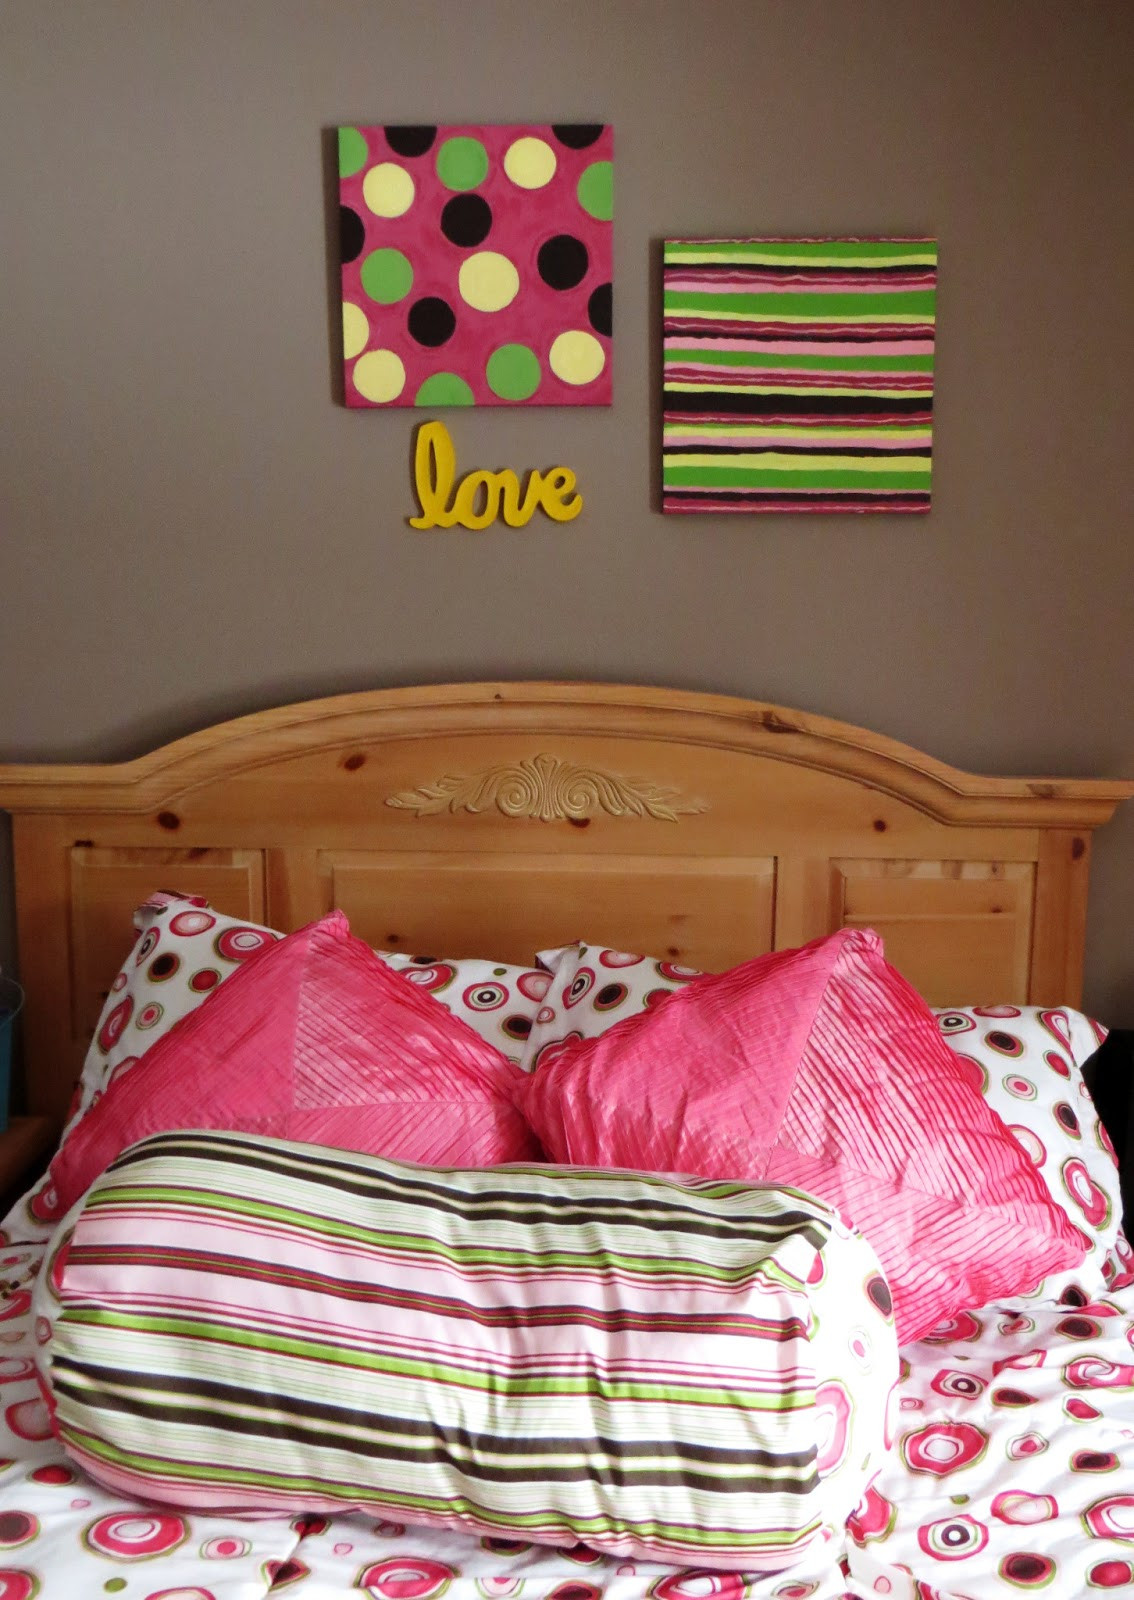 Best ideas about DIY Room Decoration For Girls . Save or Pin Namely Original DIY Teen Girl Room Decor Now.